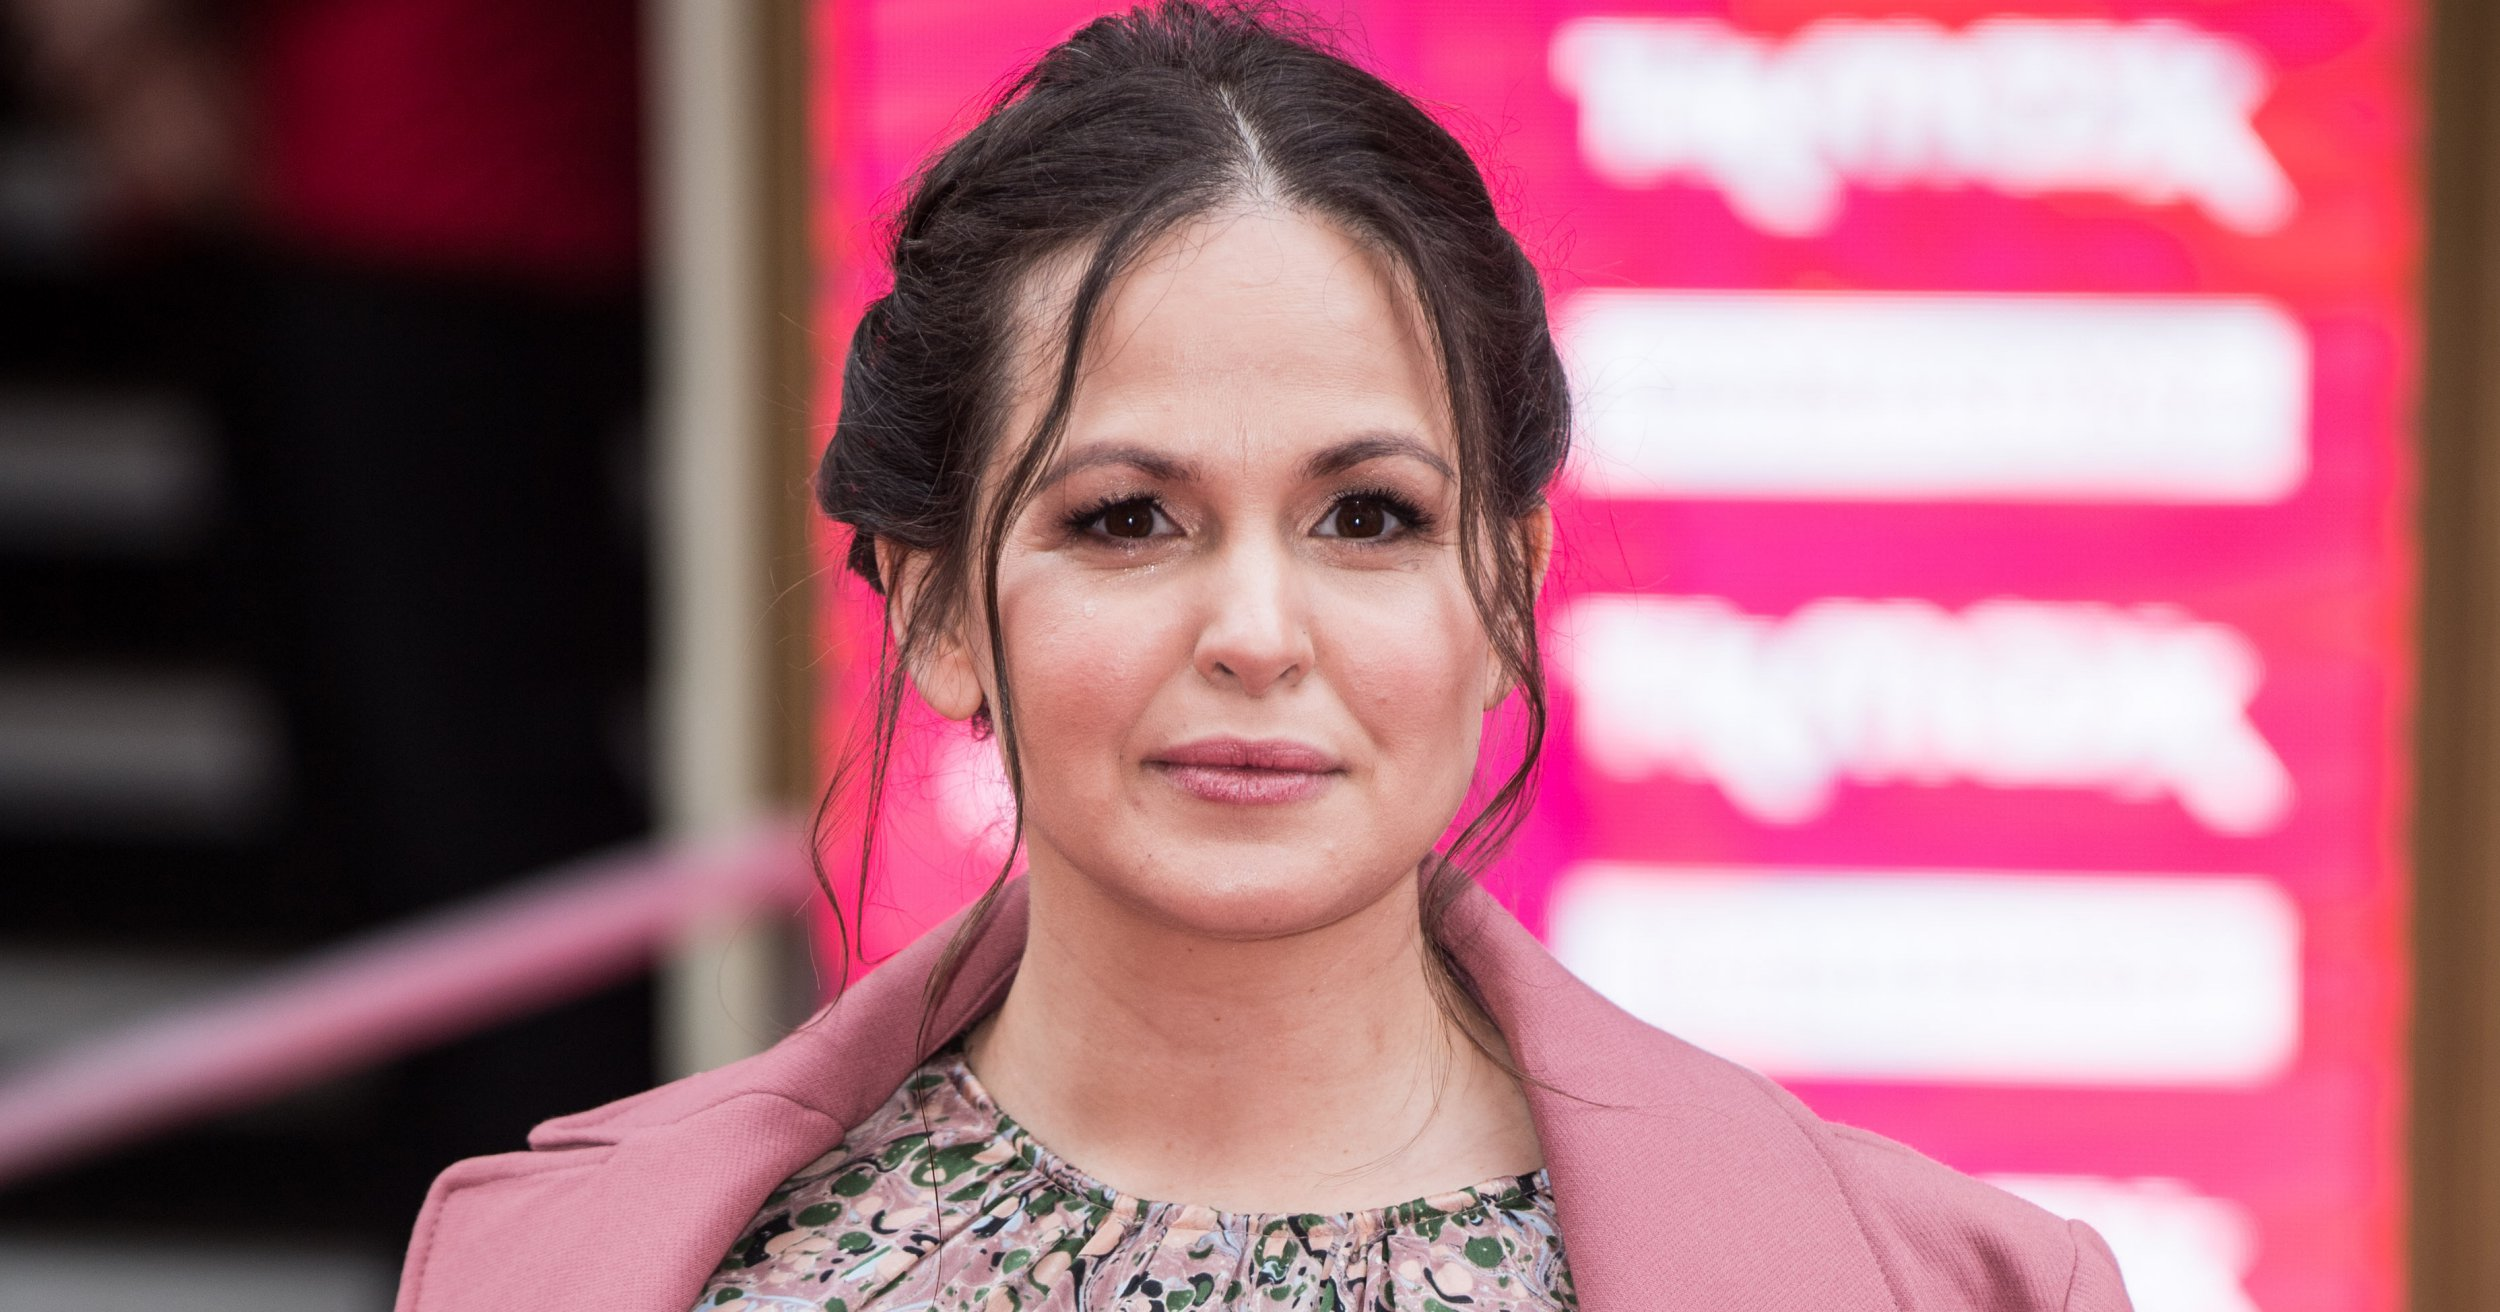 Mandatory Credit: Photo by James Gourley/REX/Shutterstock (9449847bf) Giovanna Fletcher The Prince's Trust TK Maxx and Homesense Awards, London, UK - 06 Mar 2018